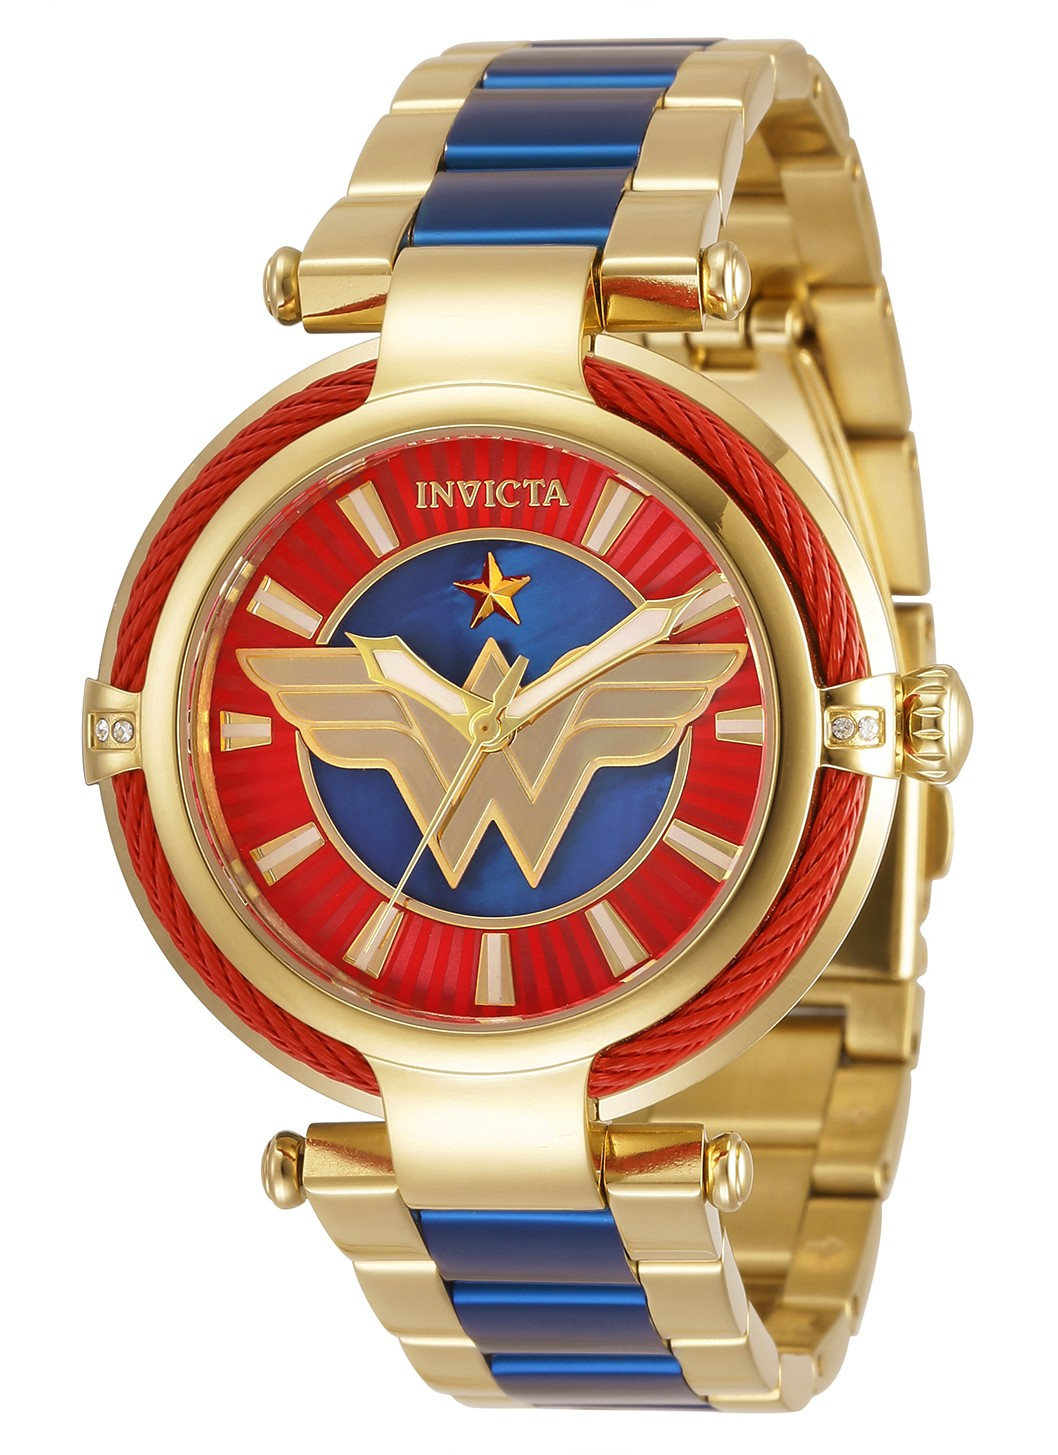 Invicta DC Comics Wonder Woman Quartz Women's Watch - 40mm Stainless Steel Case, Stainless Steel Band, Gold, Blue (34954)